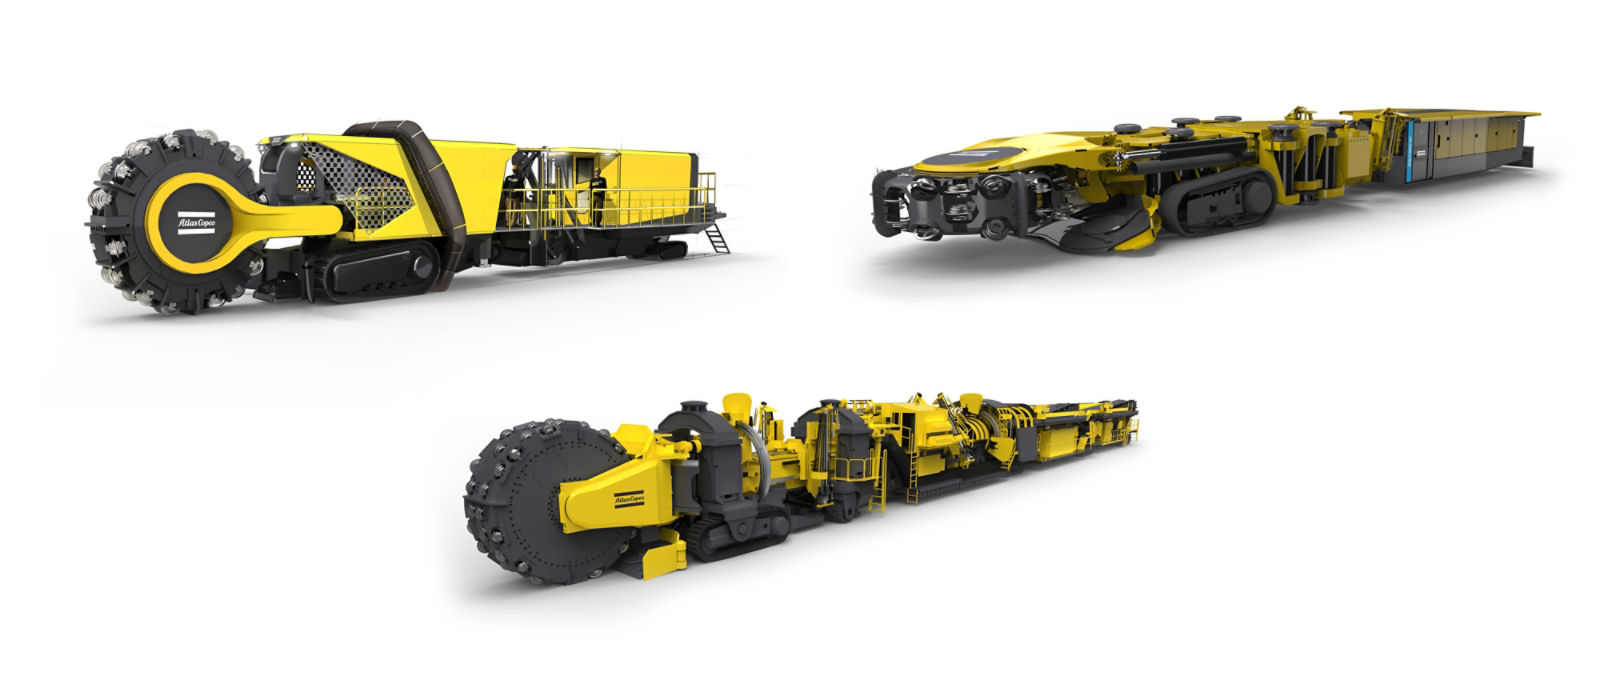 Atlas Copco Mobile Miner product family